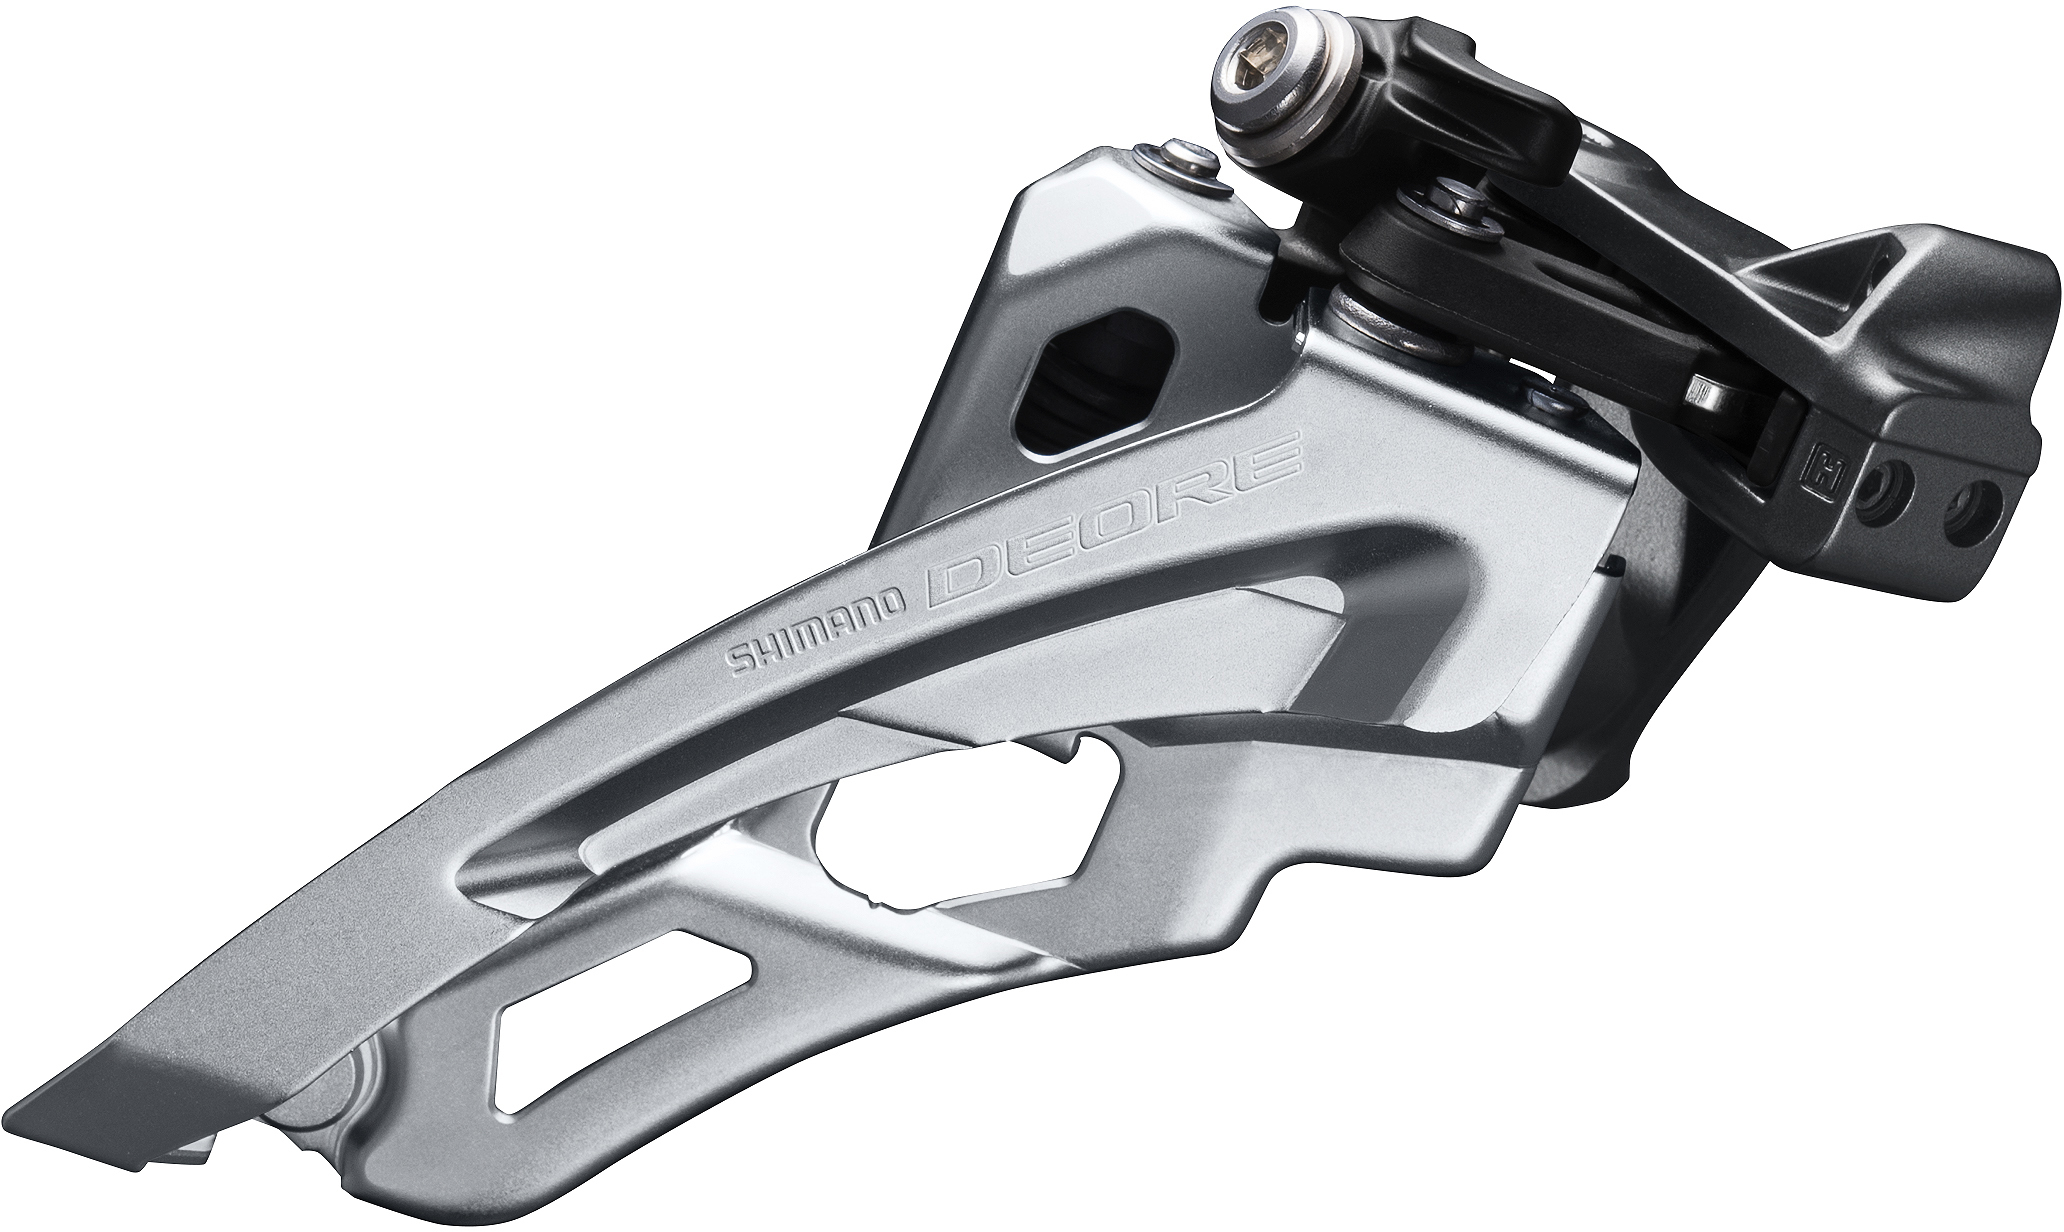 Shimano - Deore M6000 Low Clamp 3x10 Forskifter | Front derailleur